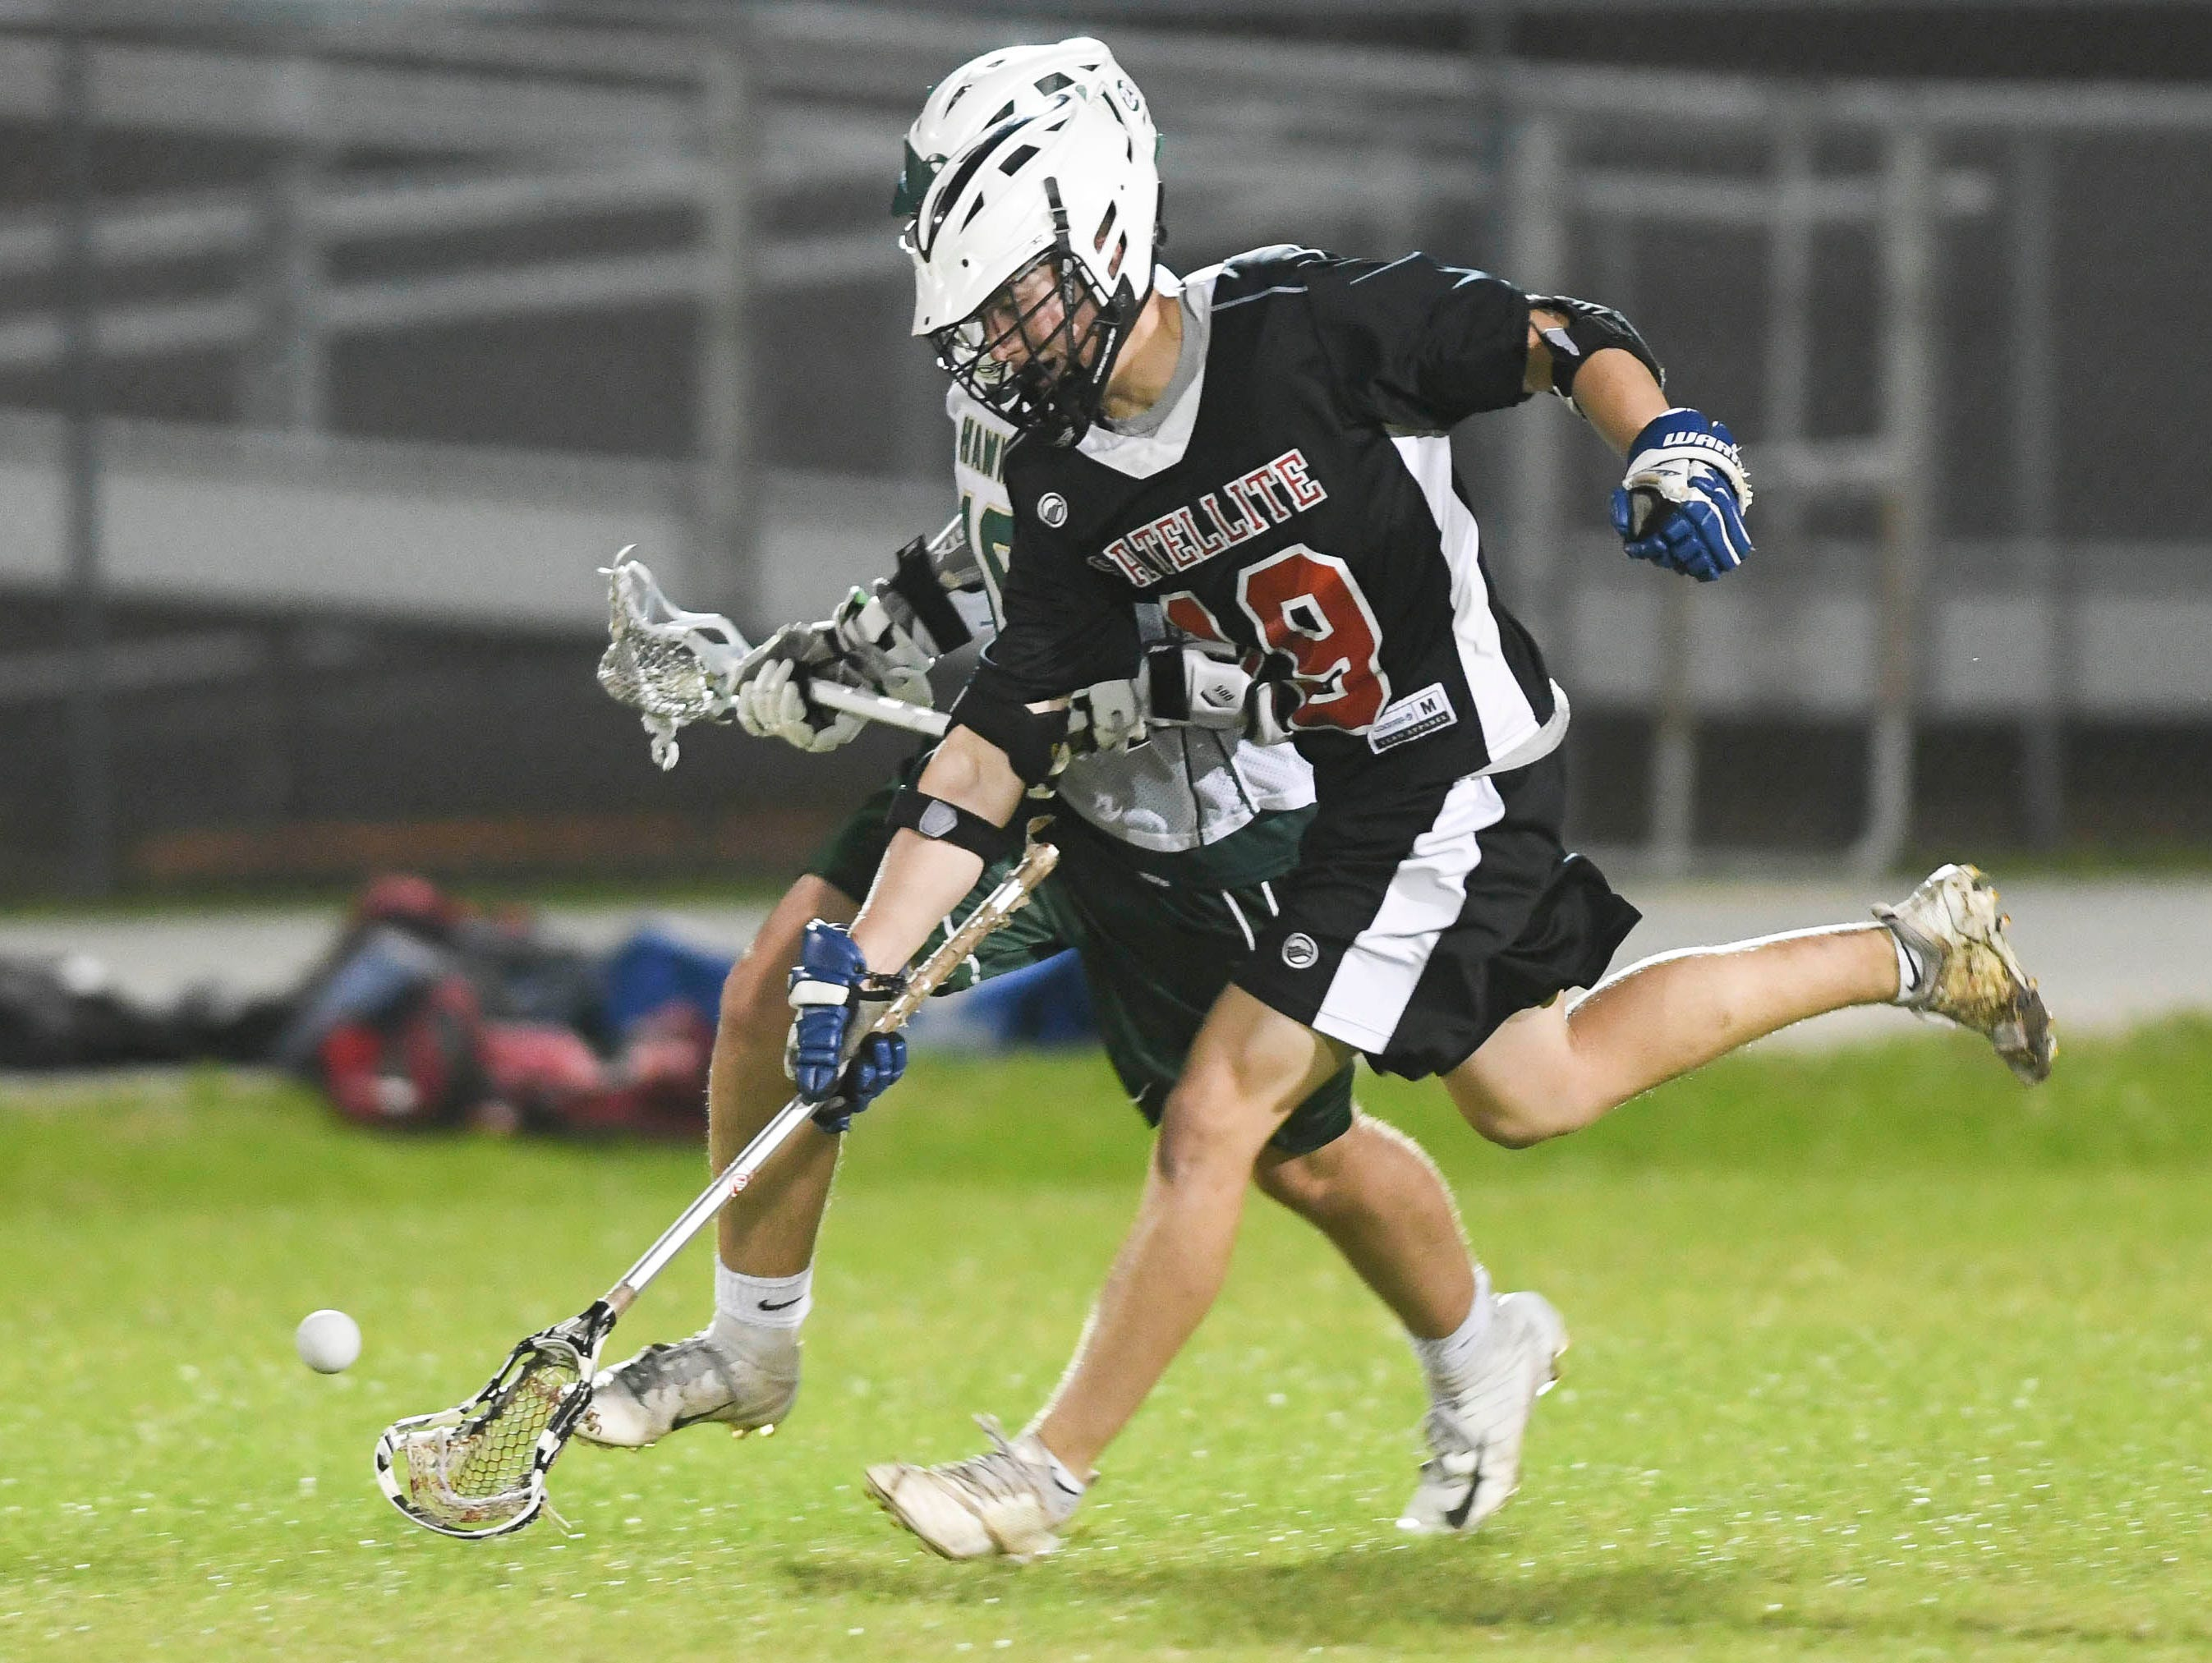 Satellite's Alex Goodale (19) and Matt Lynch of Viera (10) chase the ball during Tuesday's game.